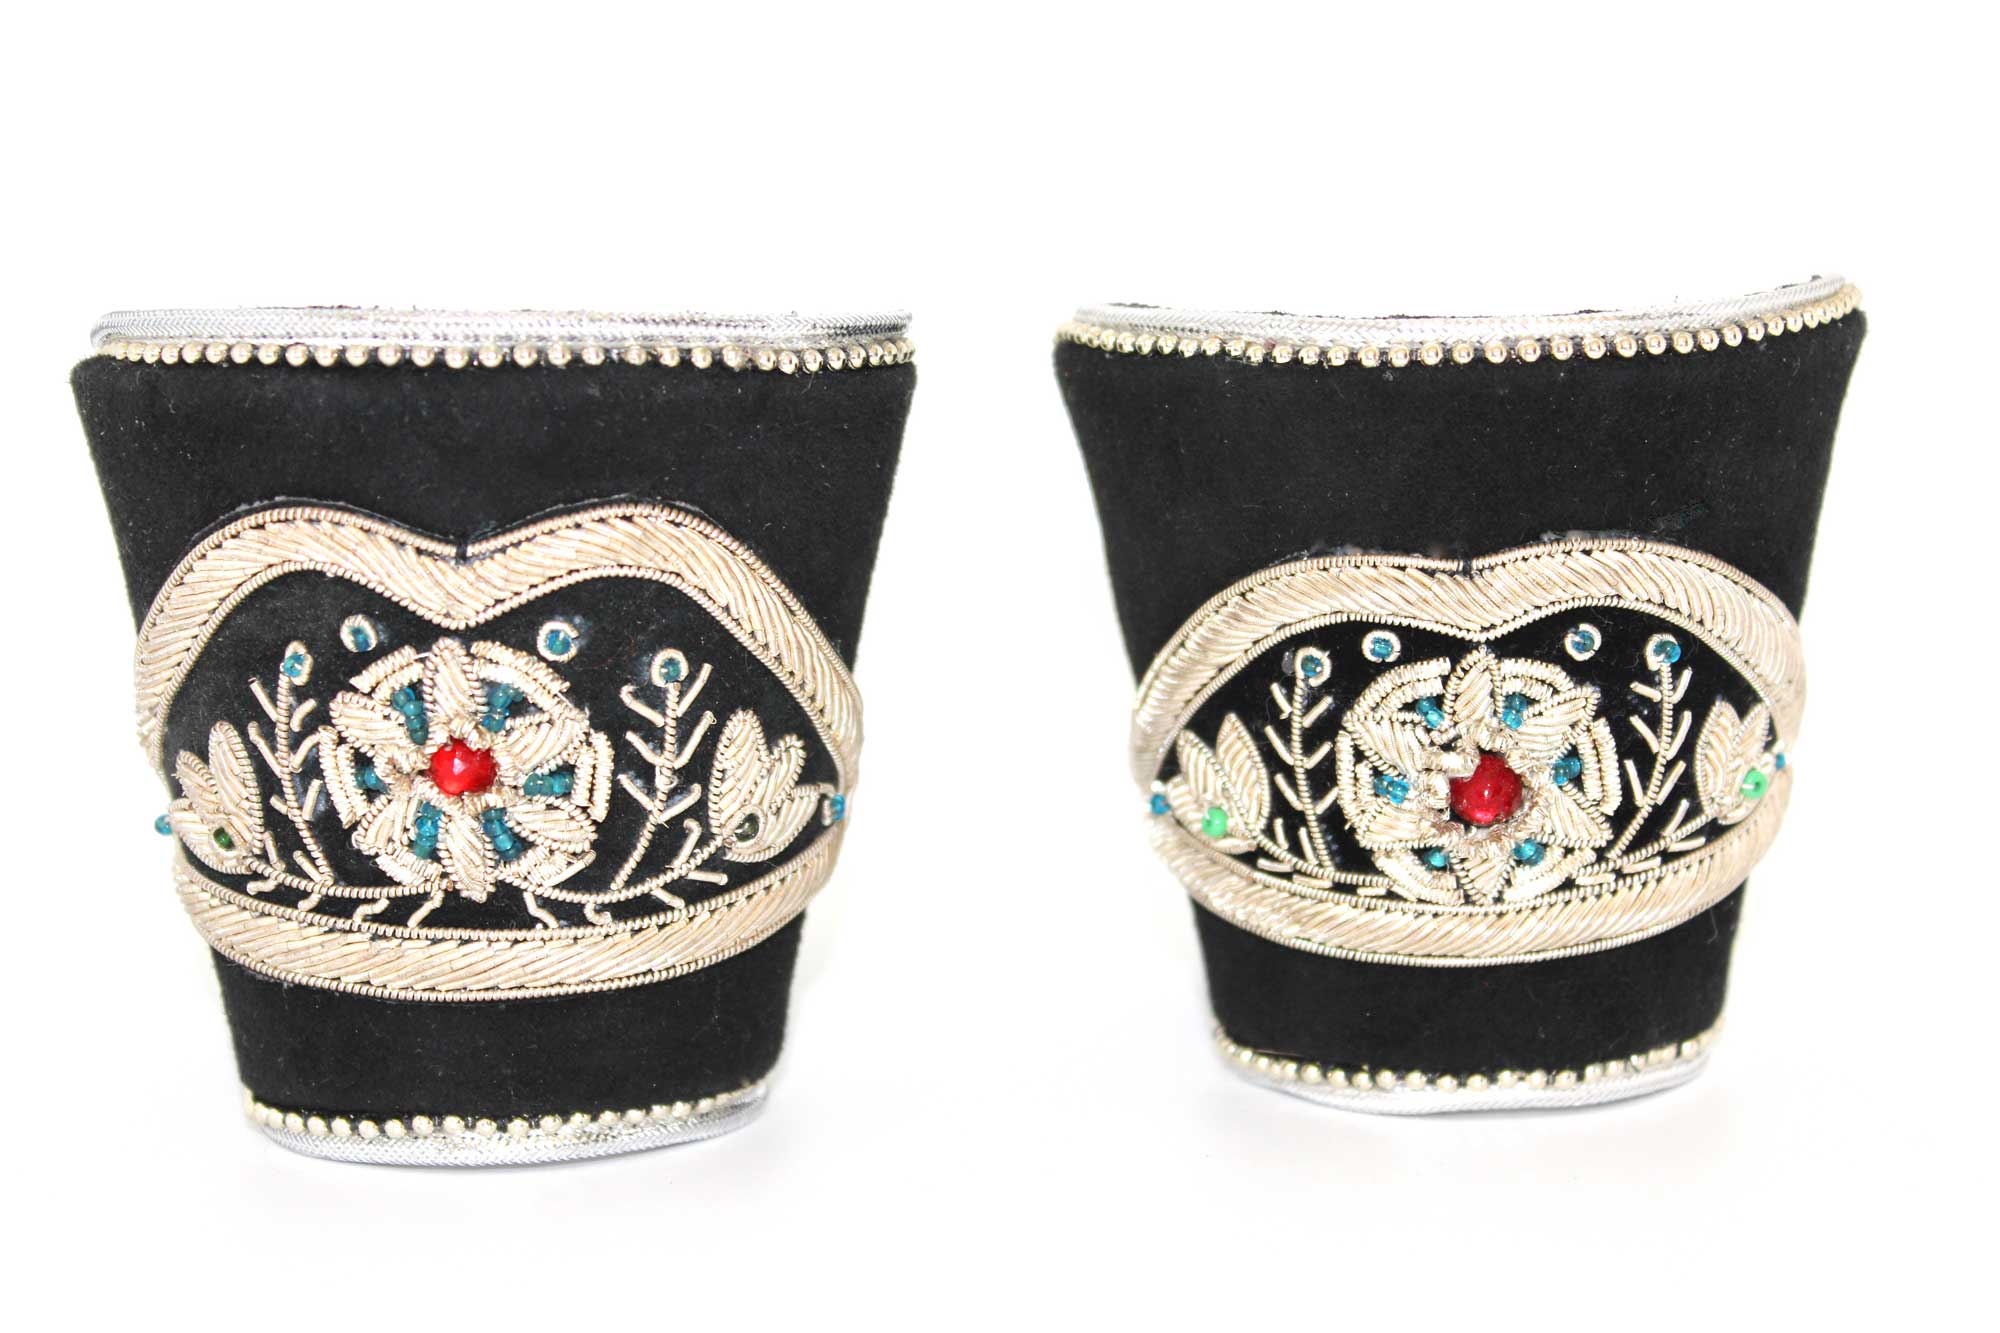 Kate Younger Designs Winged Victory Cuffs